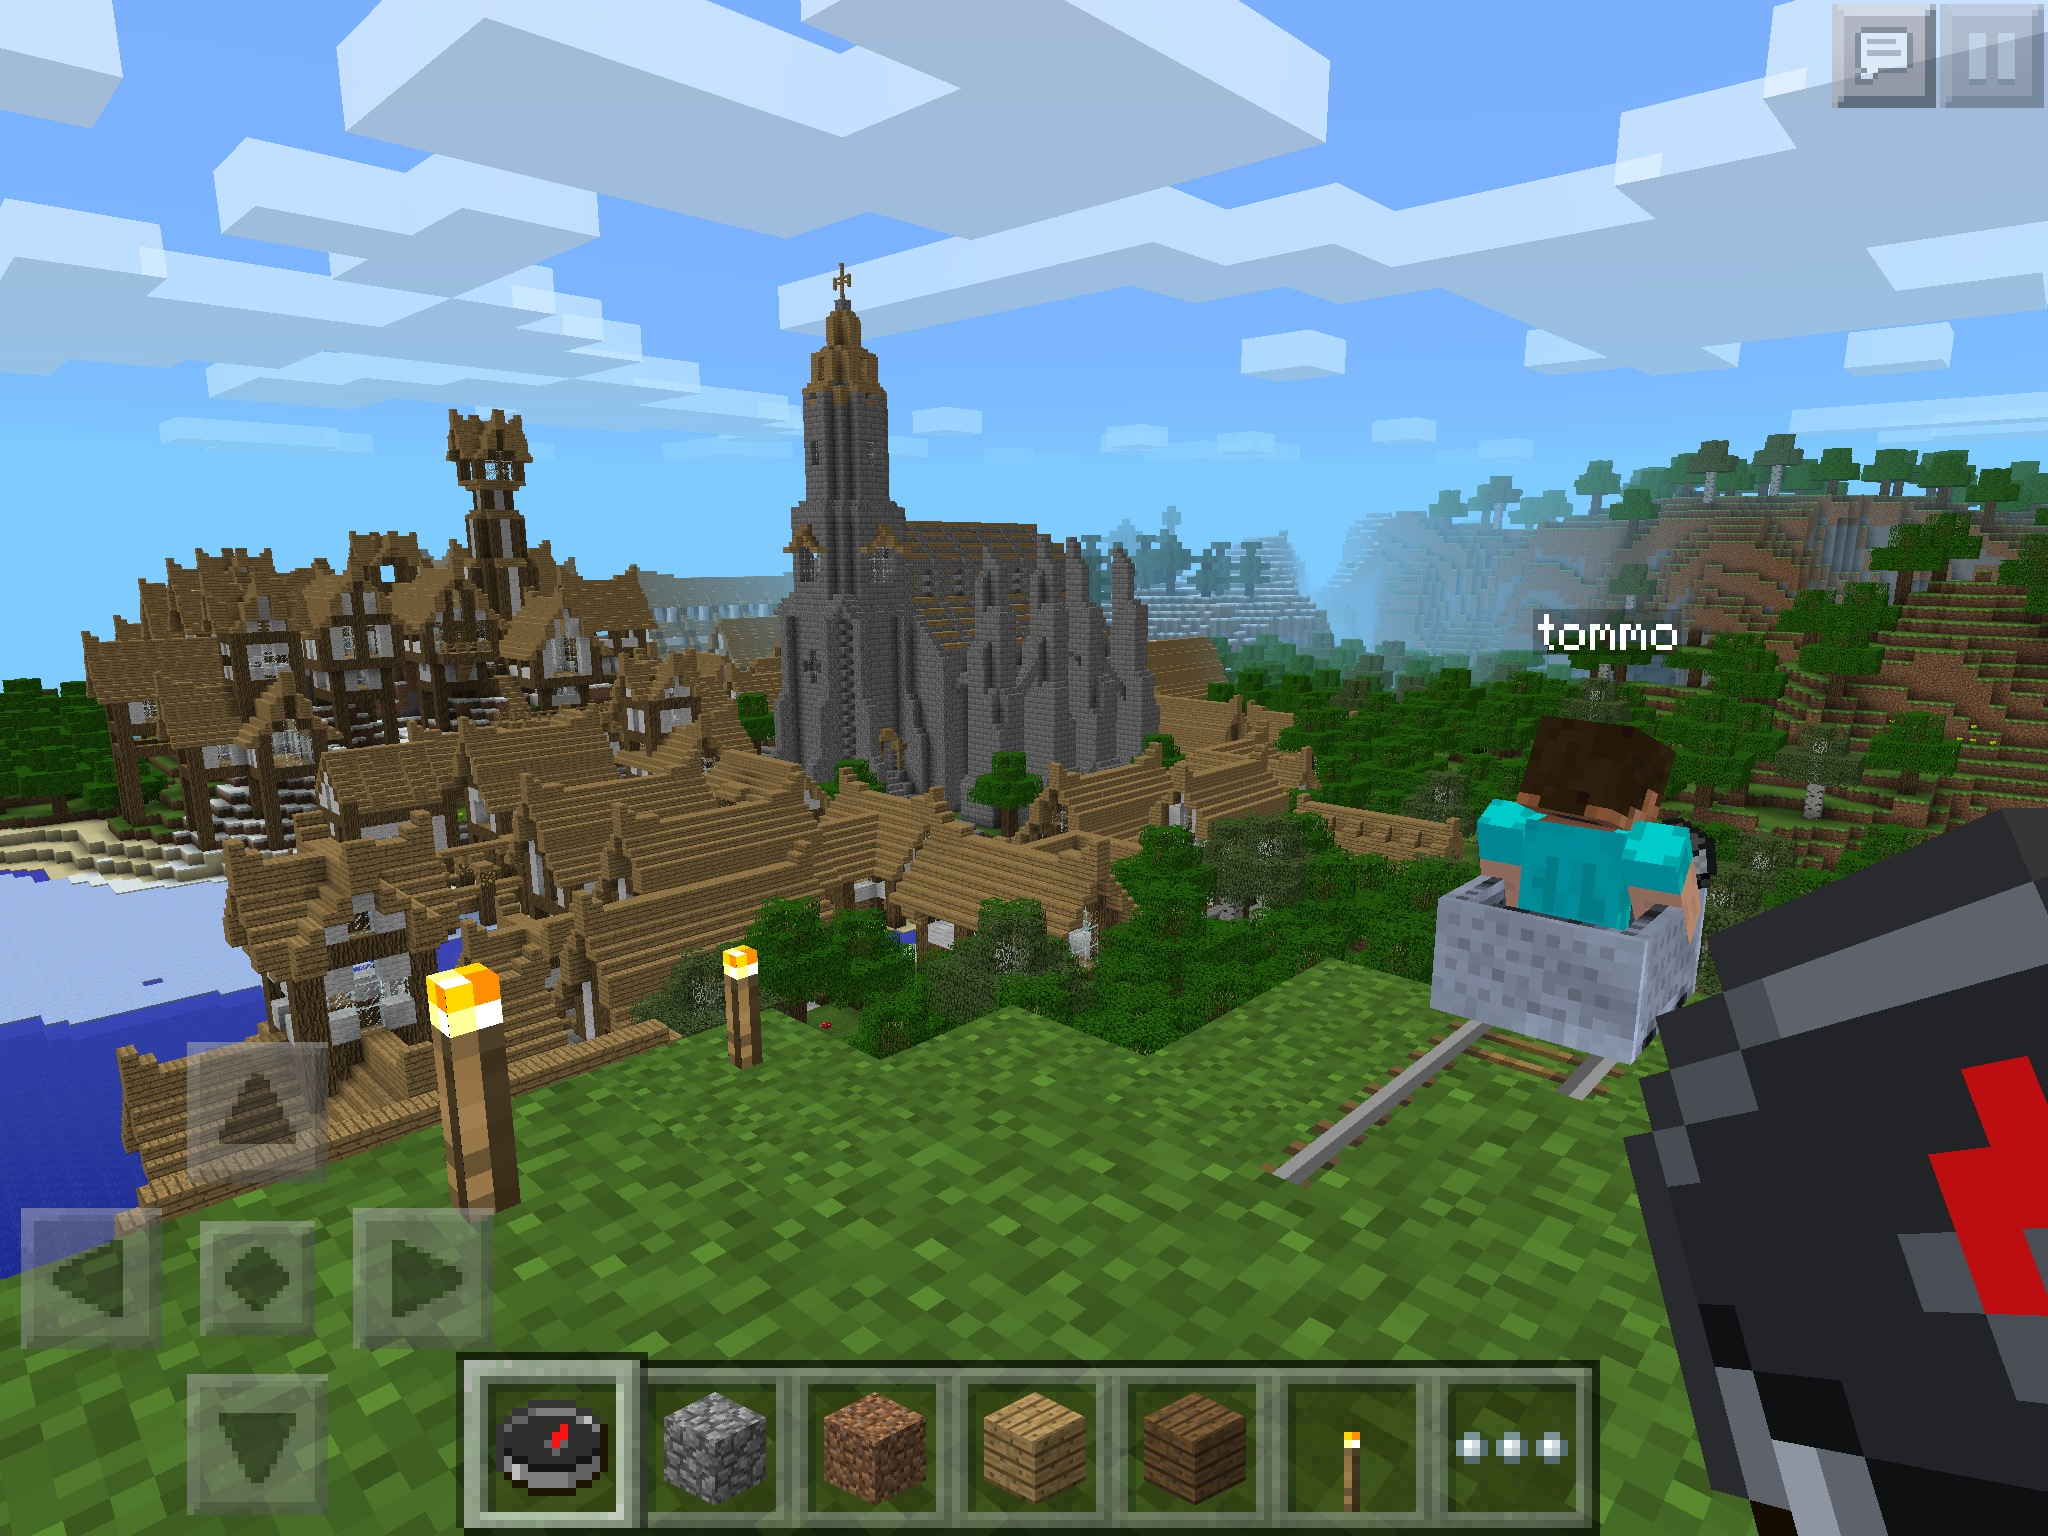 Latest 39;Minecraft  Pocket Edition39; Update is Now Available, Adds